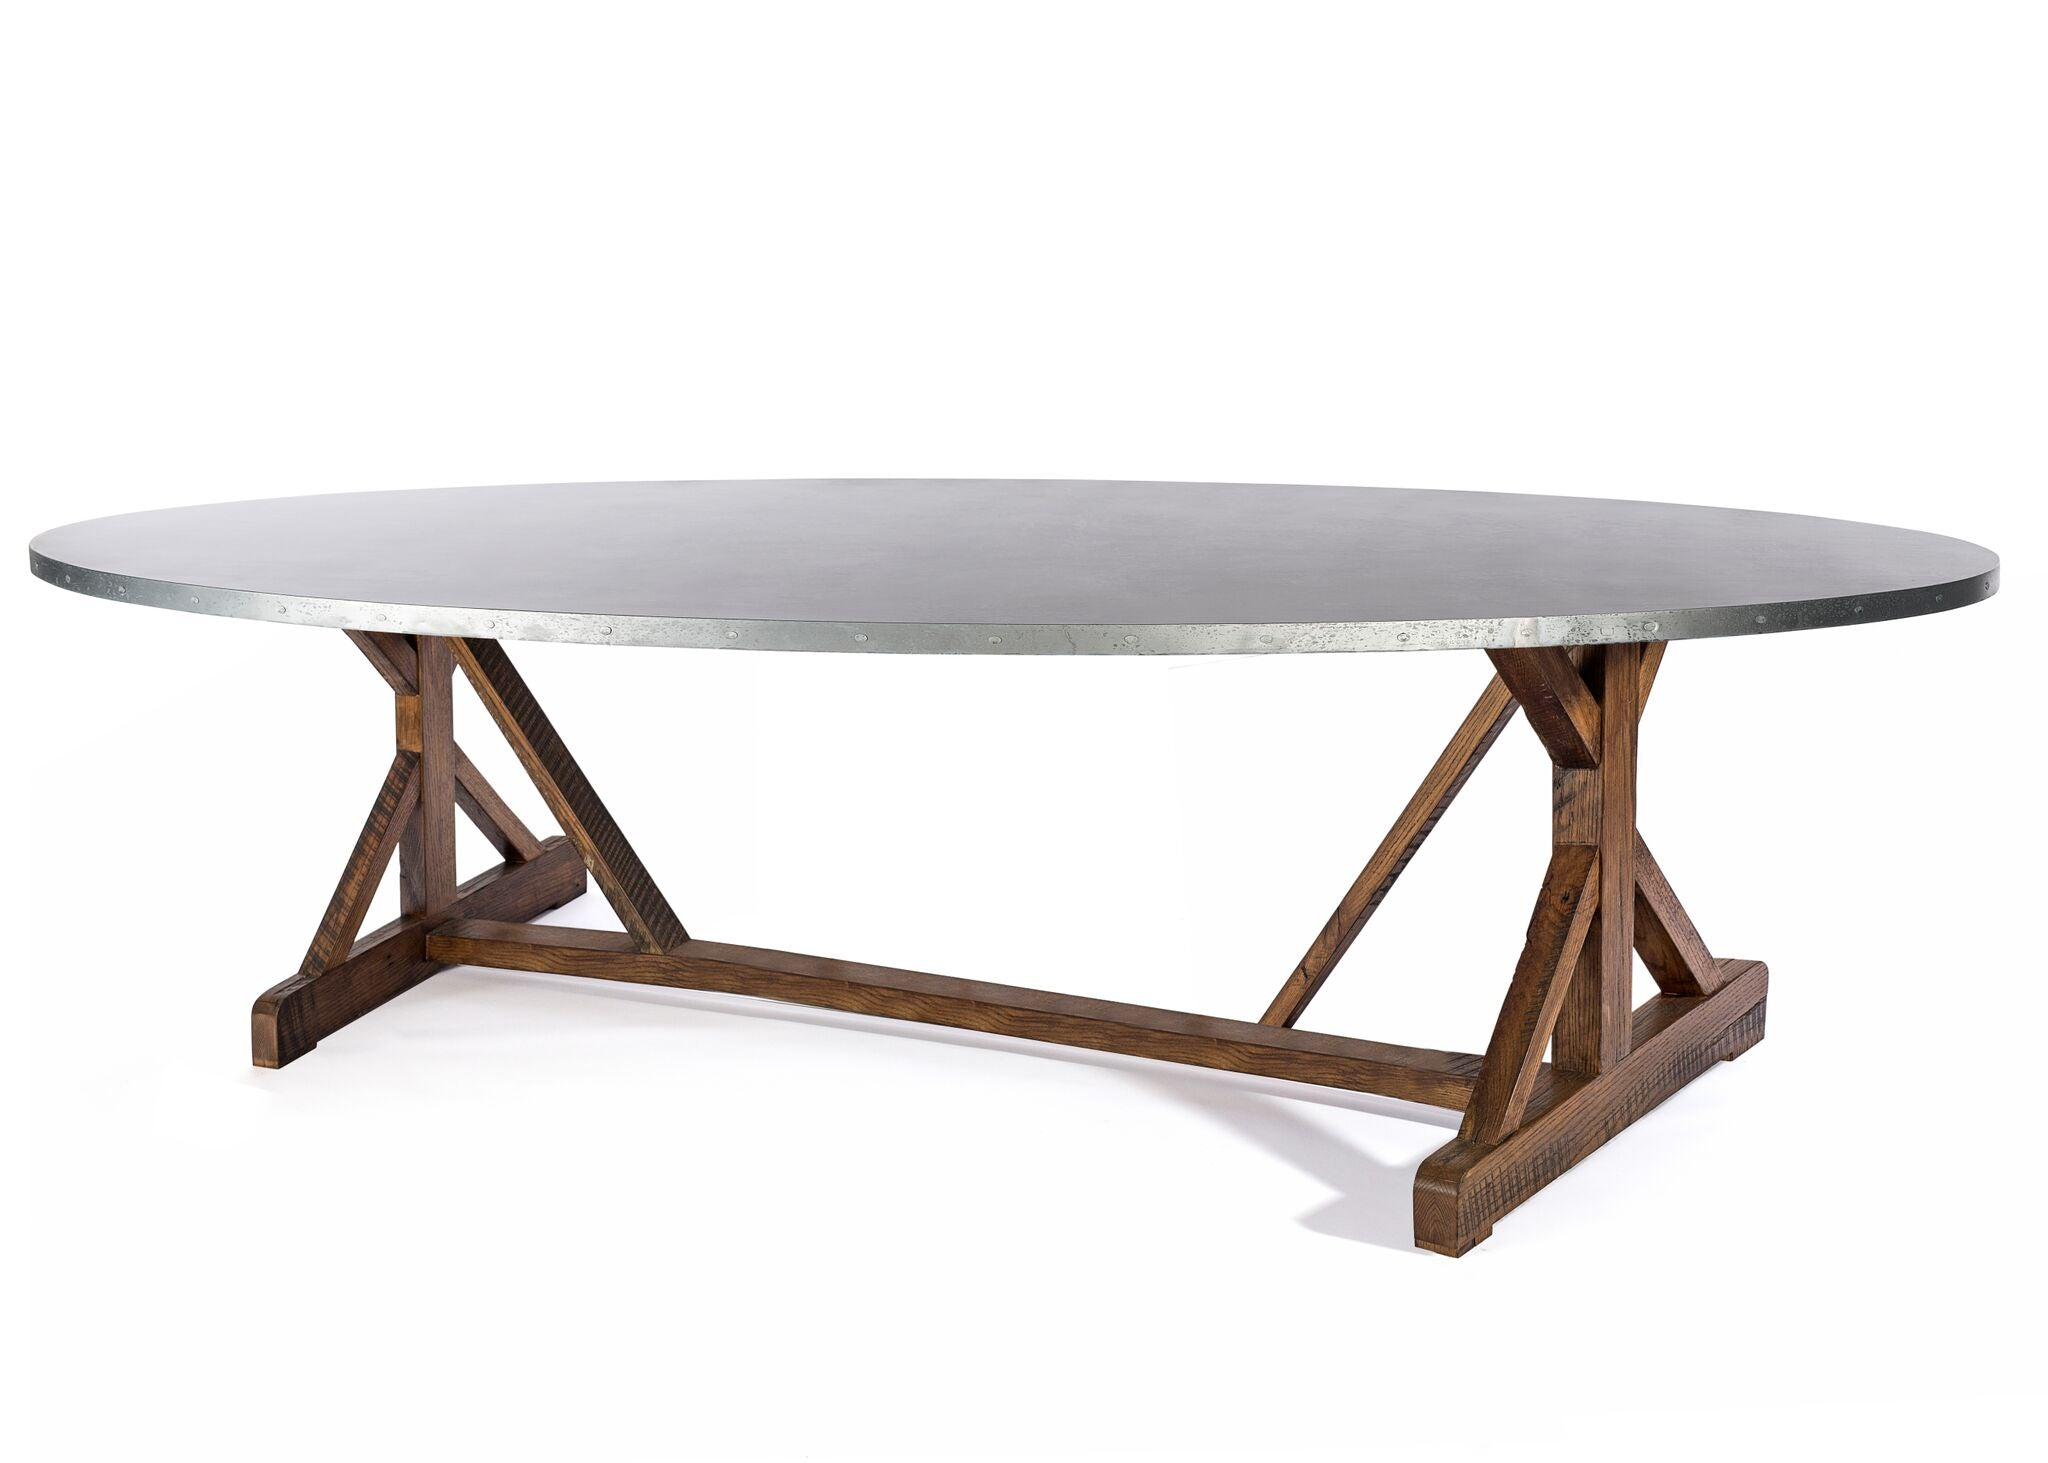 "Zinc Oval Tables | French Trestle Table | BLACKENED BRONZE | Weathered Grey on Reclaimed Oak | CUSTOM SIZE L 120 W 43 H 30 | 1.5"" Standard 